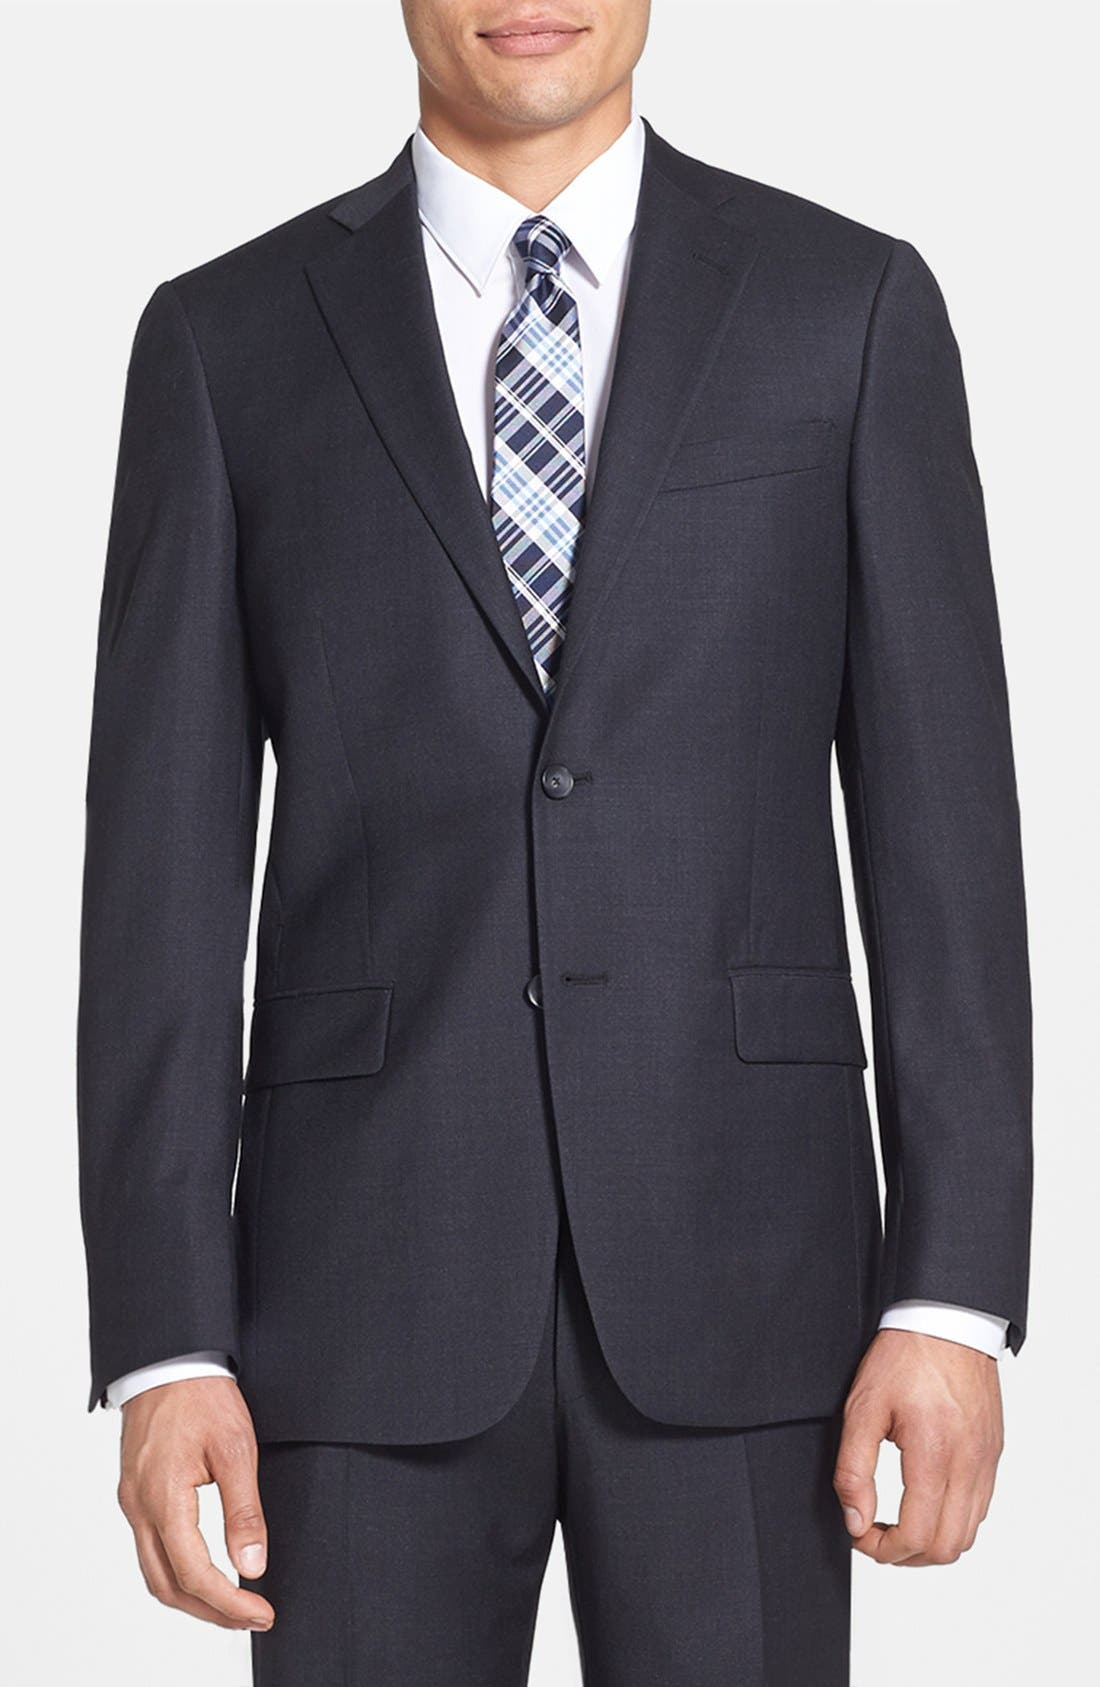 HART SCHAFFNER MARX, New York Classic Fit Solid Stretch Wool Suit, Alternate thumbnail 3, color, GREY